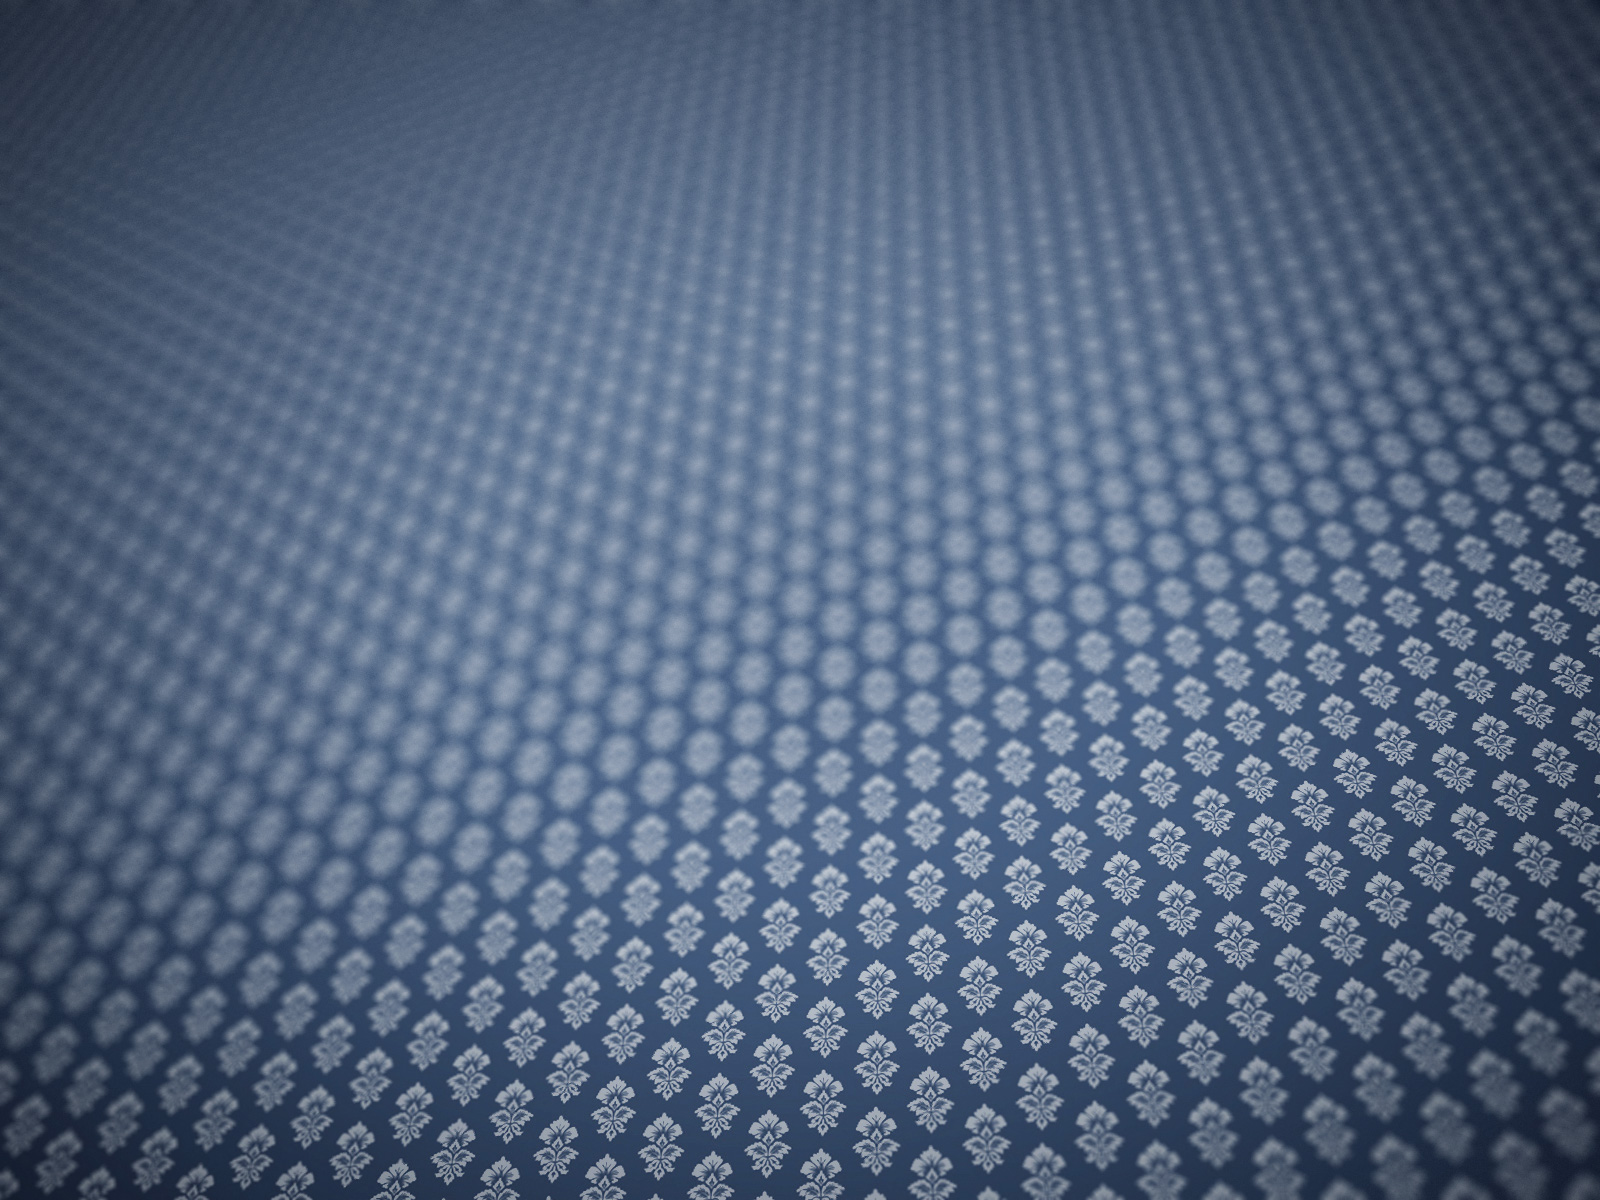 Pattern - Abstract Wallpaper